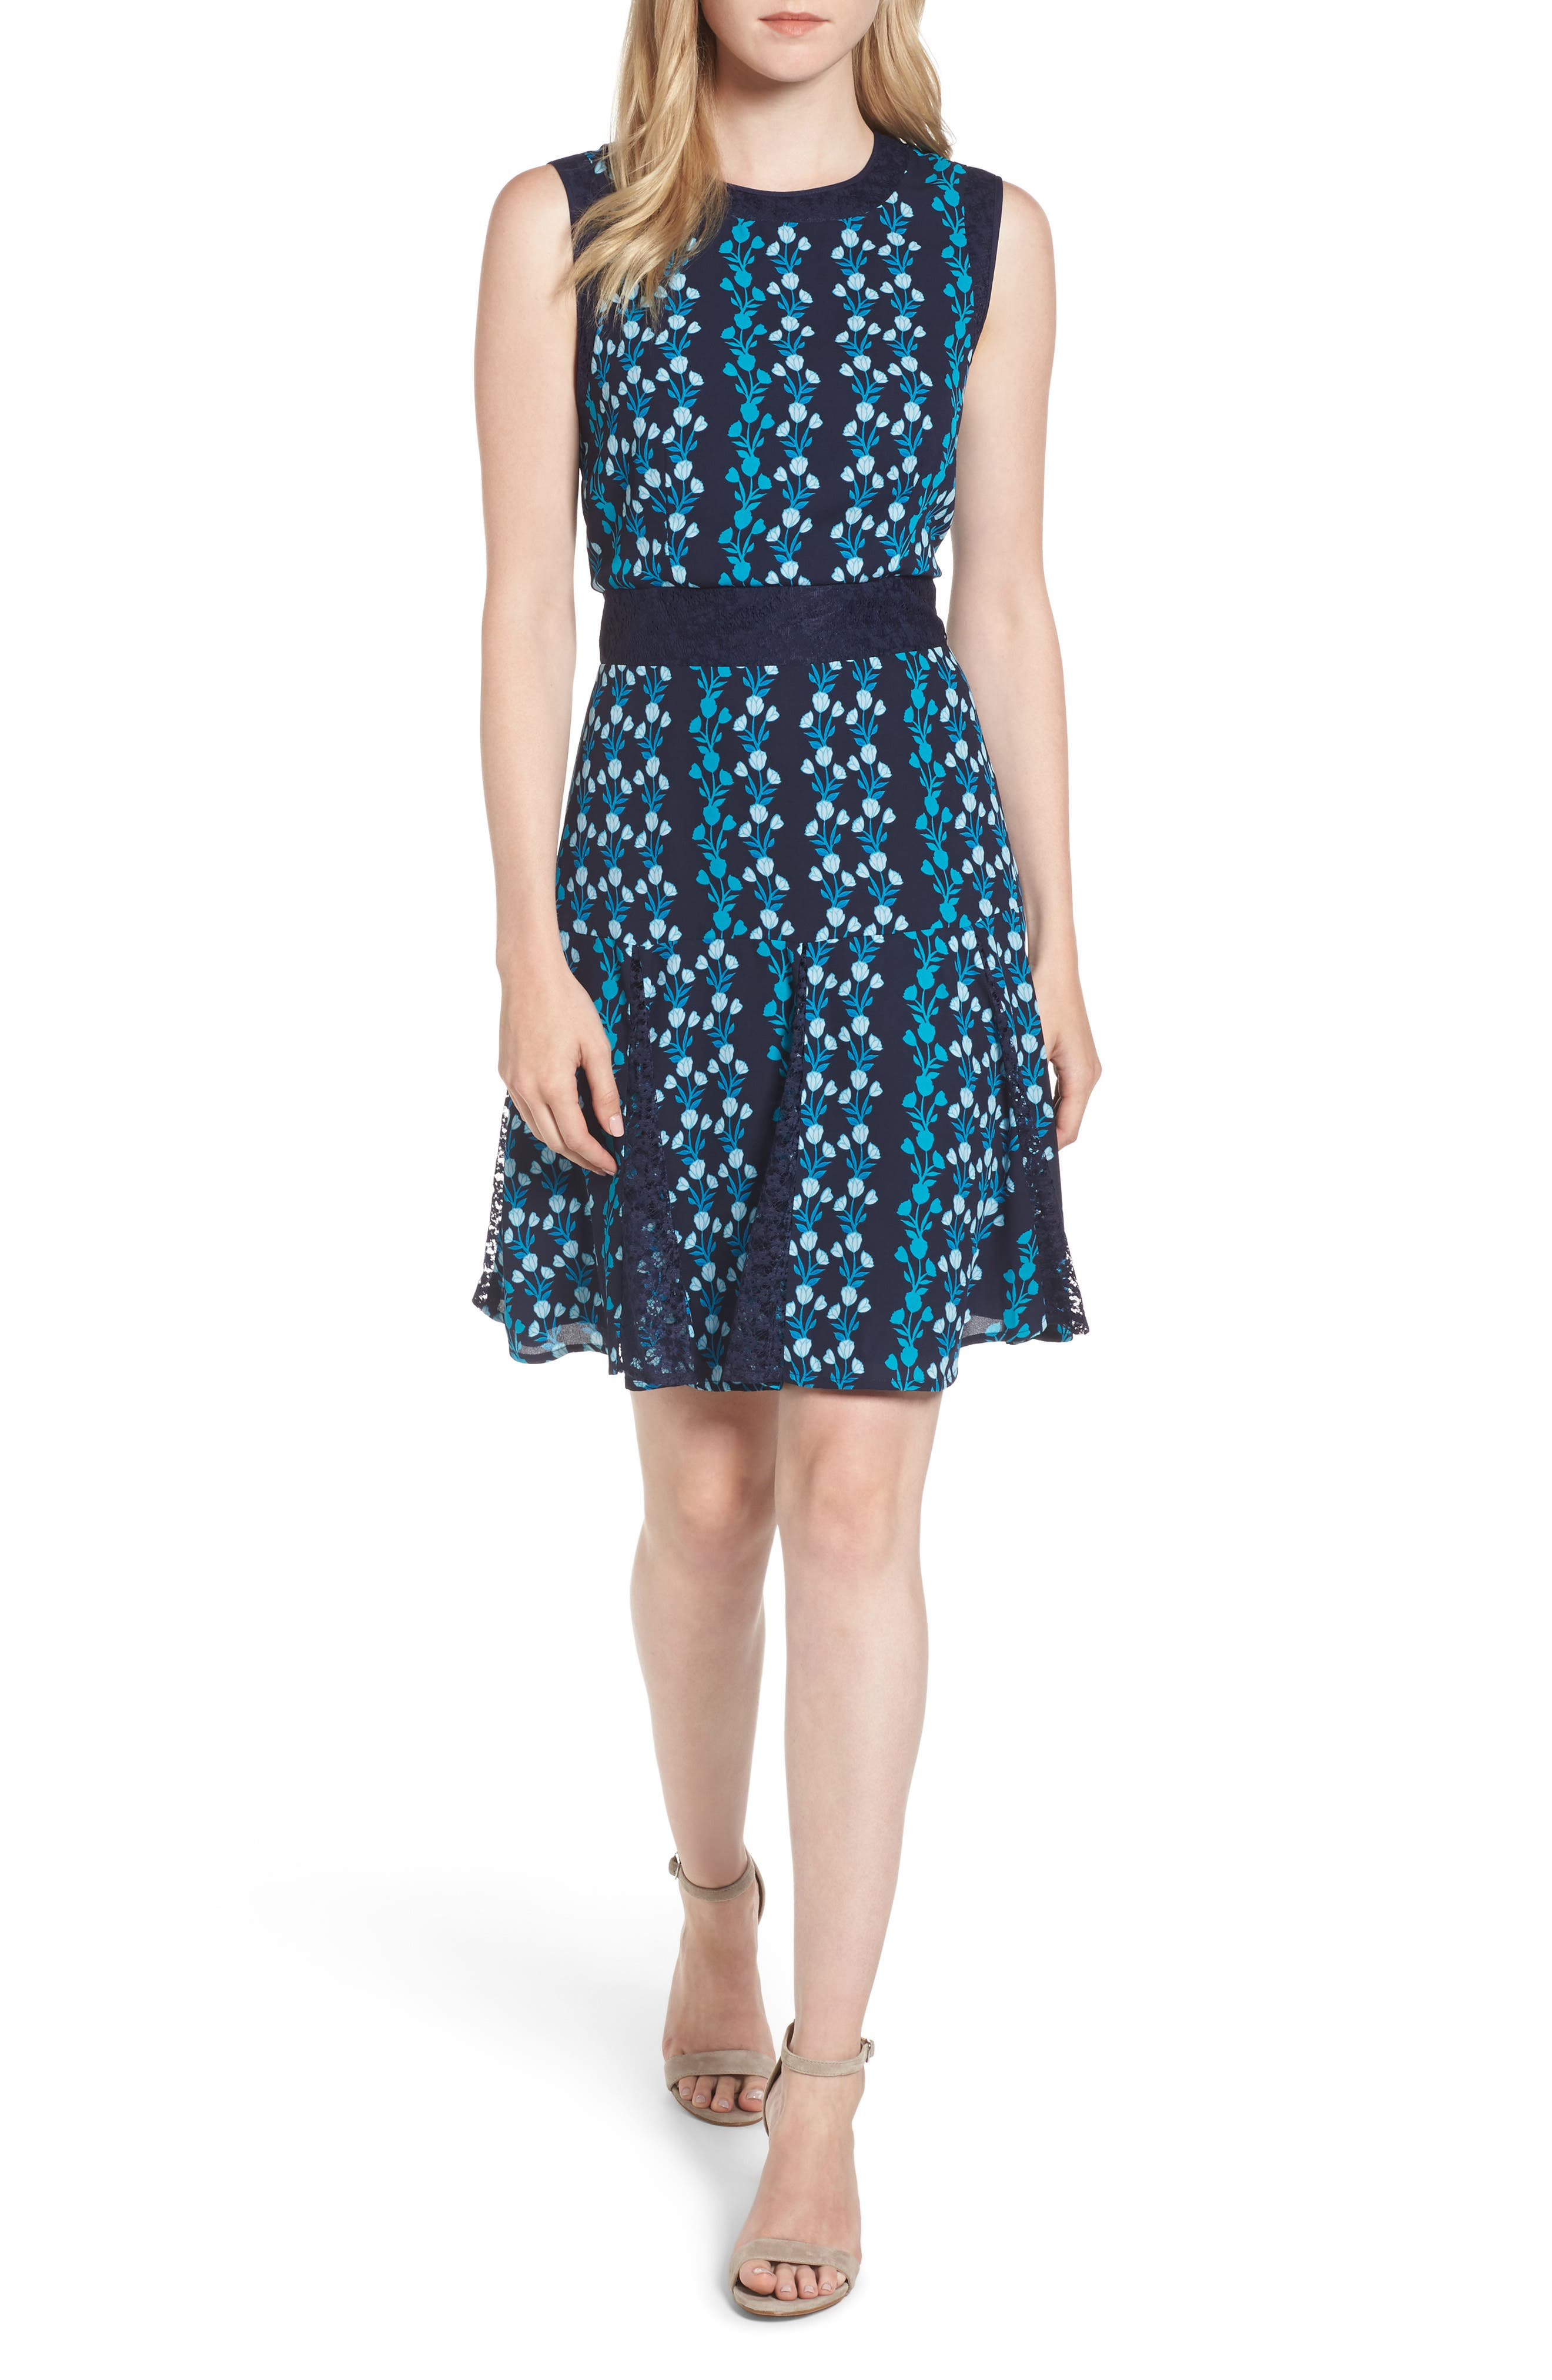 Meadow Vines Lace Dress,                             Main thumbnail 1, color,                             Nassau Navy Multi